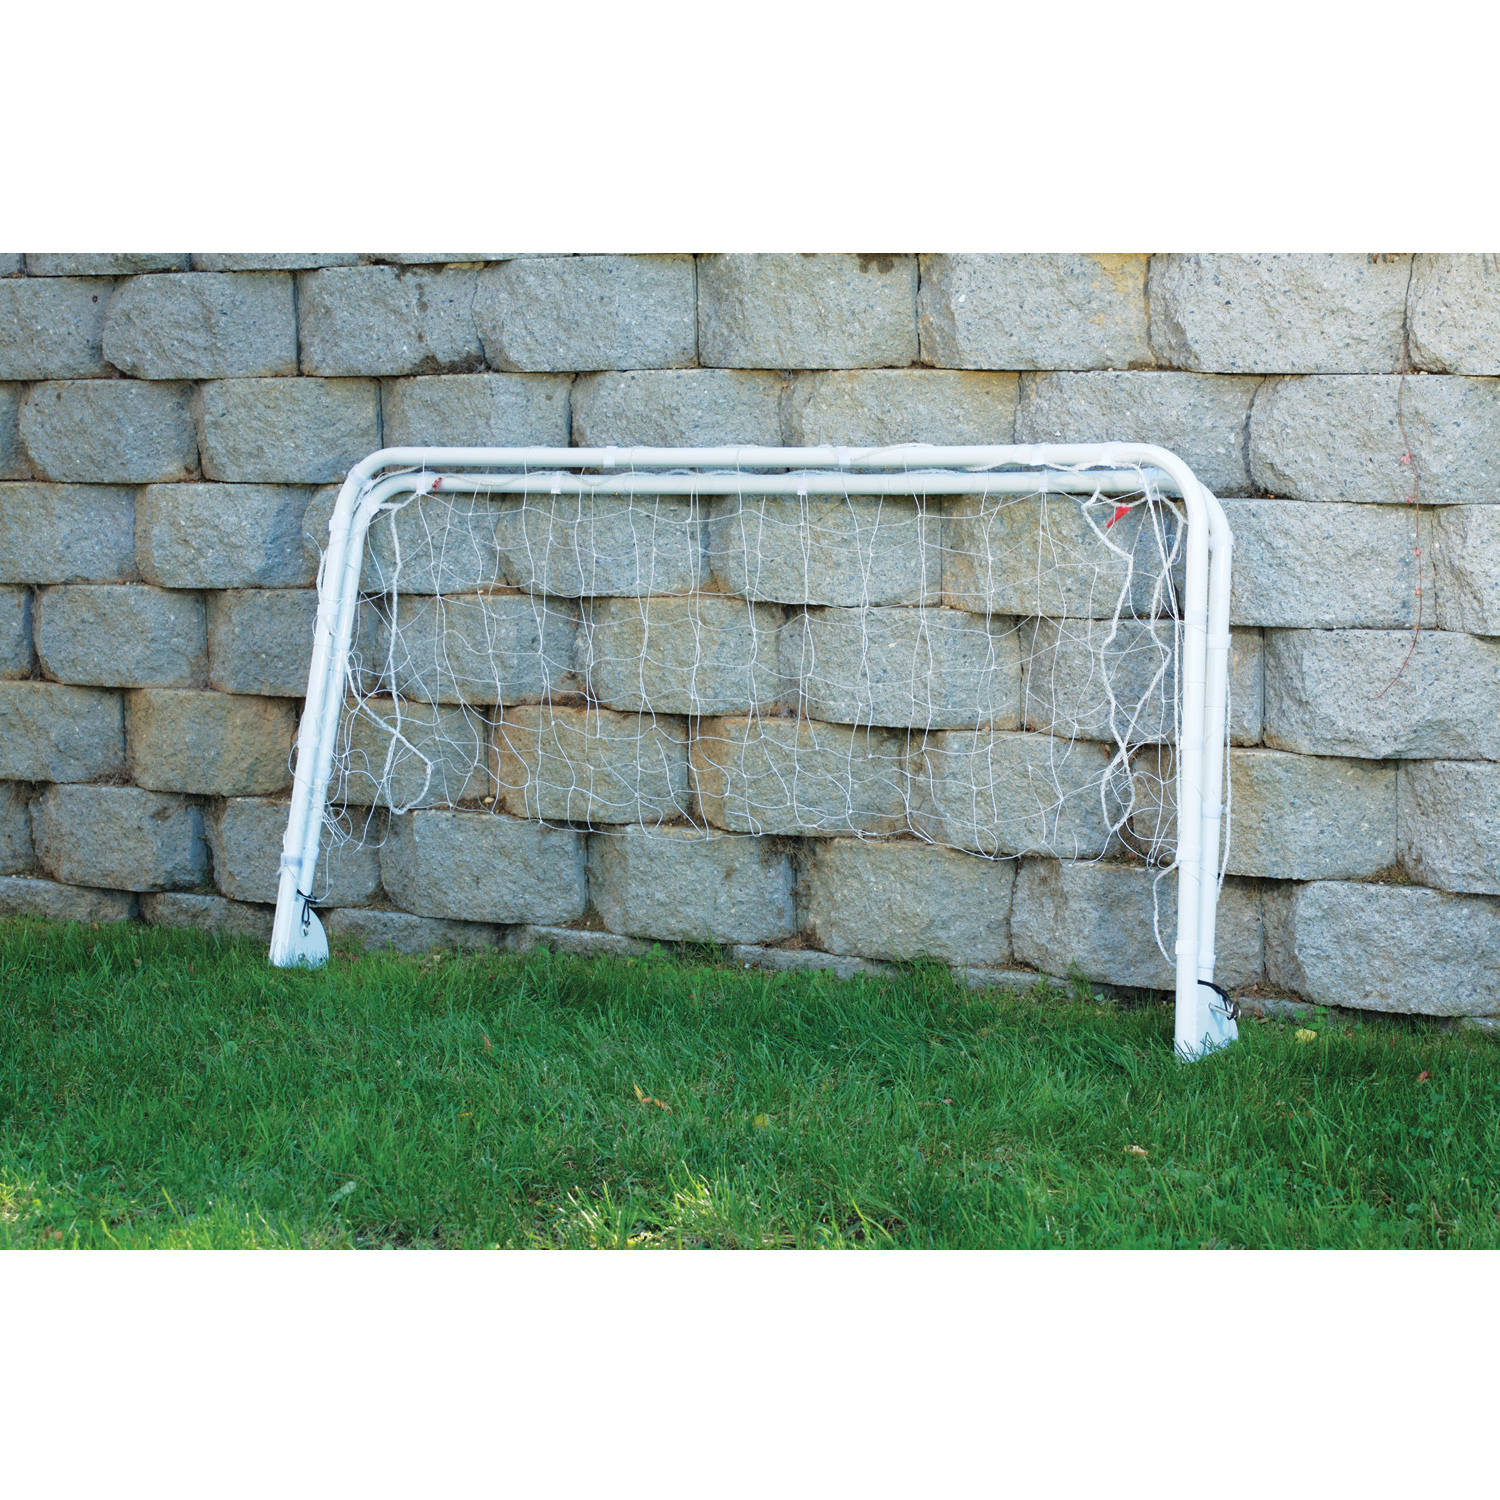 Mitre 6' x 3' Recreational Fast Fold Goal